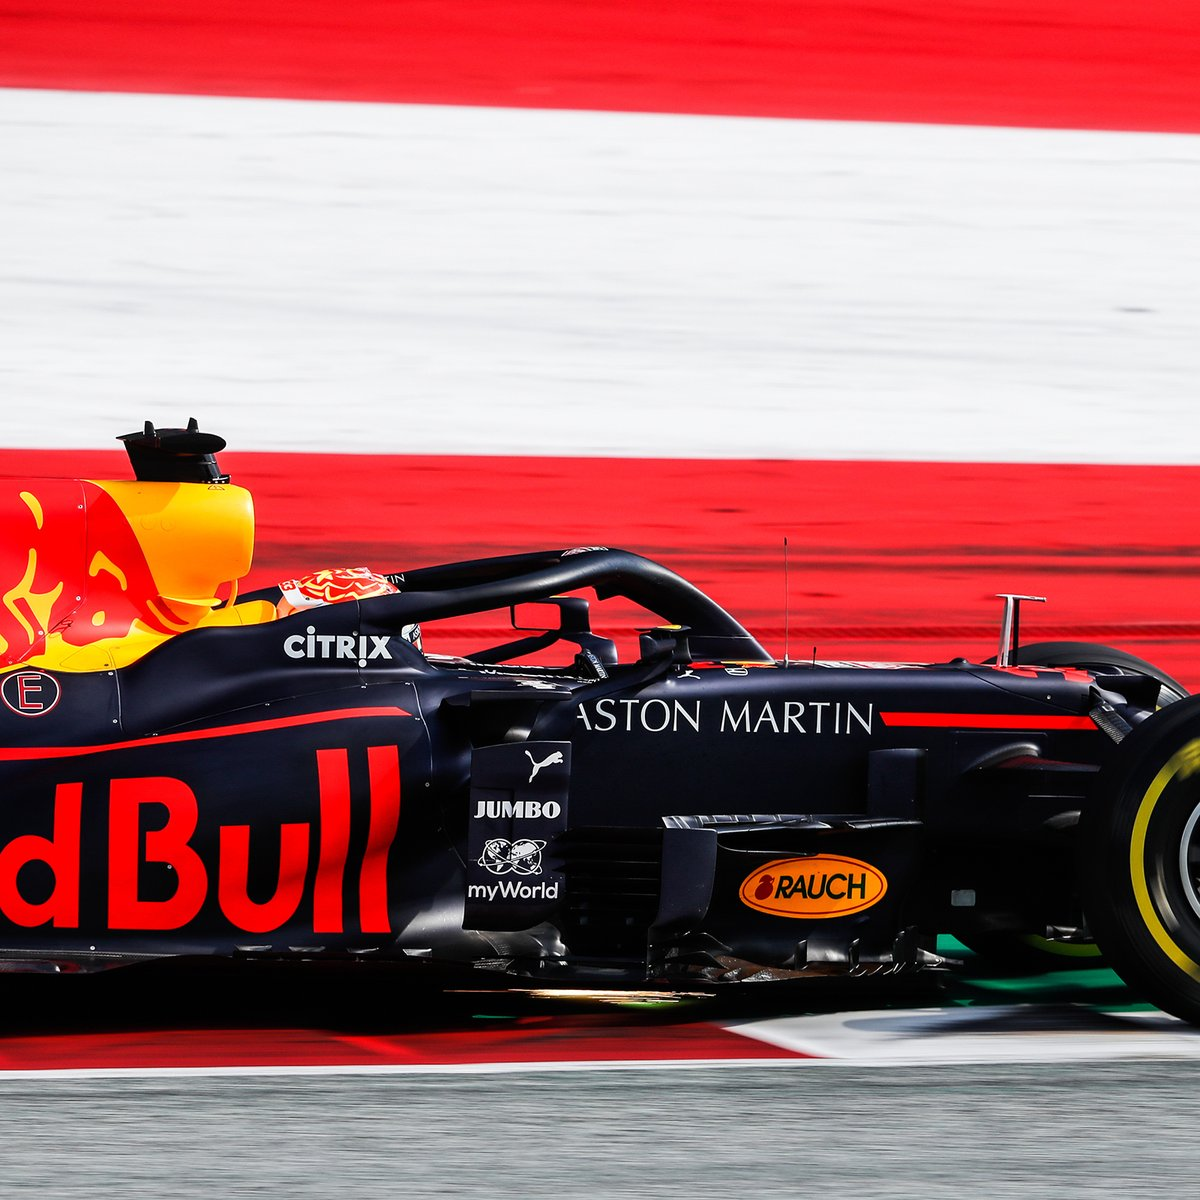 Qualifying day 💪 Let's see what today brings us 🌧️ 🦁 #UnleashTheLion #KeepPushing 🇦🇹 #AustrianGP https://t.co/A9Z8rKbUke